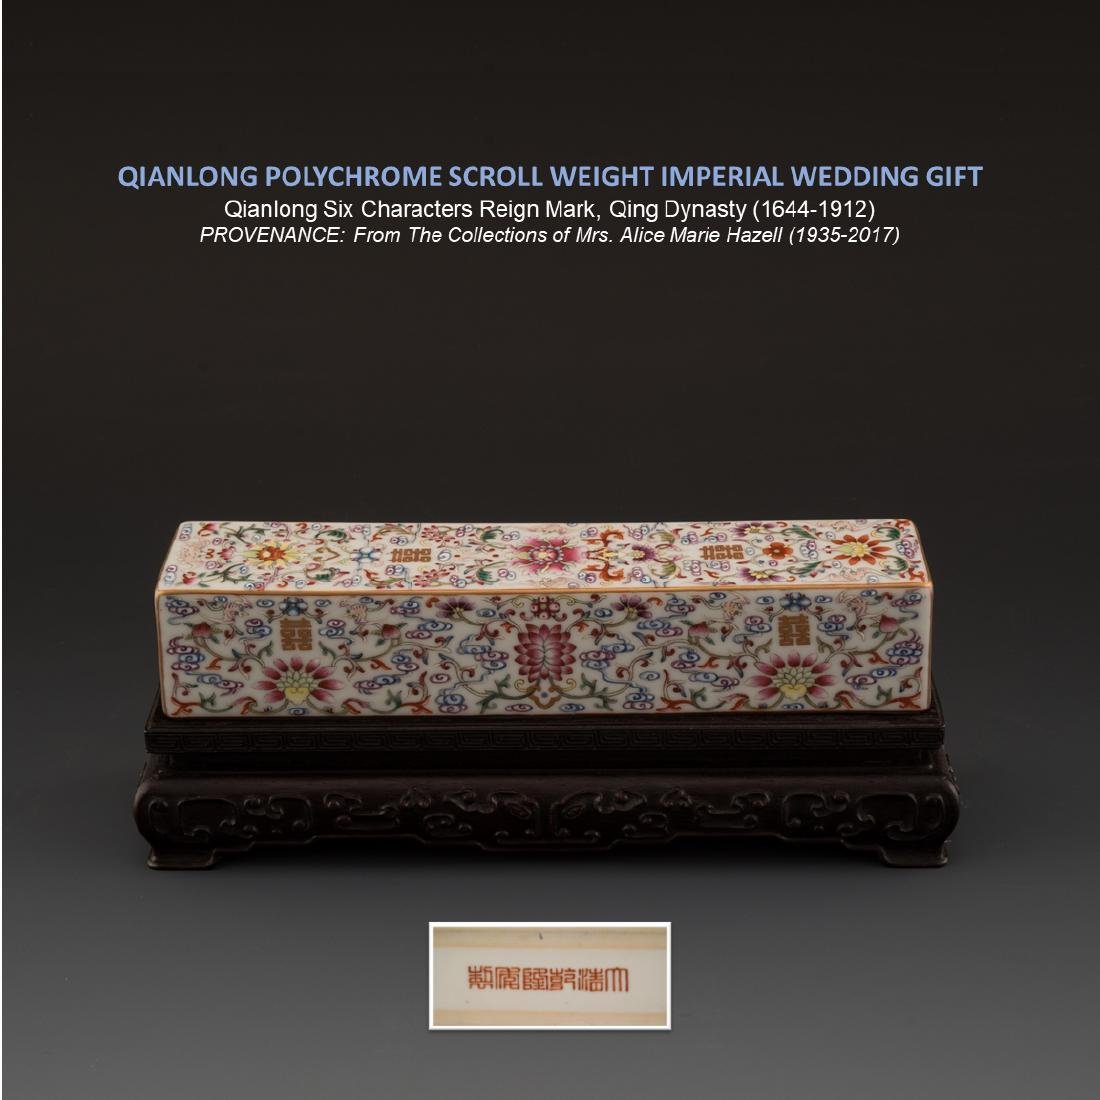 QIANLONG POLYCHROME SCROLL WEIGHT IMPERIAL WEDDING GIFT